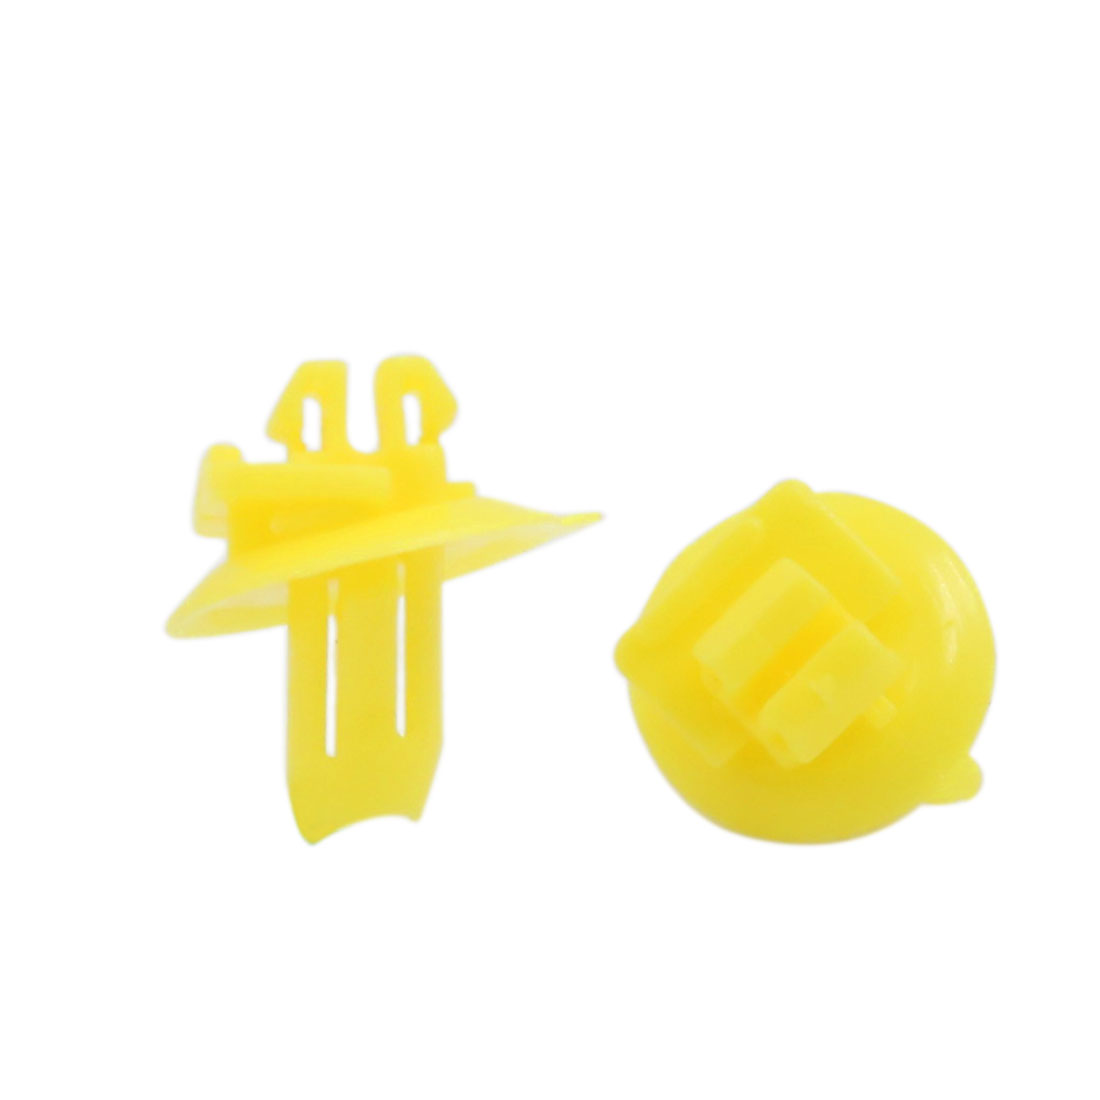 100pcs 8x10mm Hole Size Plastic Rivet Wheel Arch Cover Fastener Yellow for Toyota